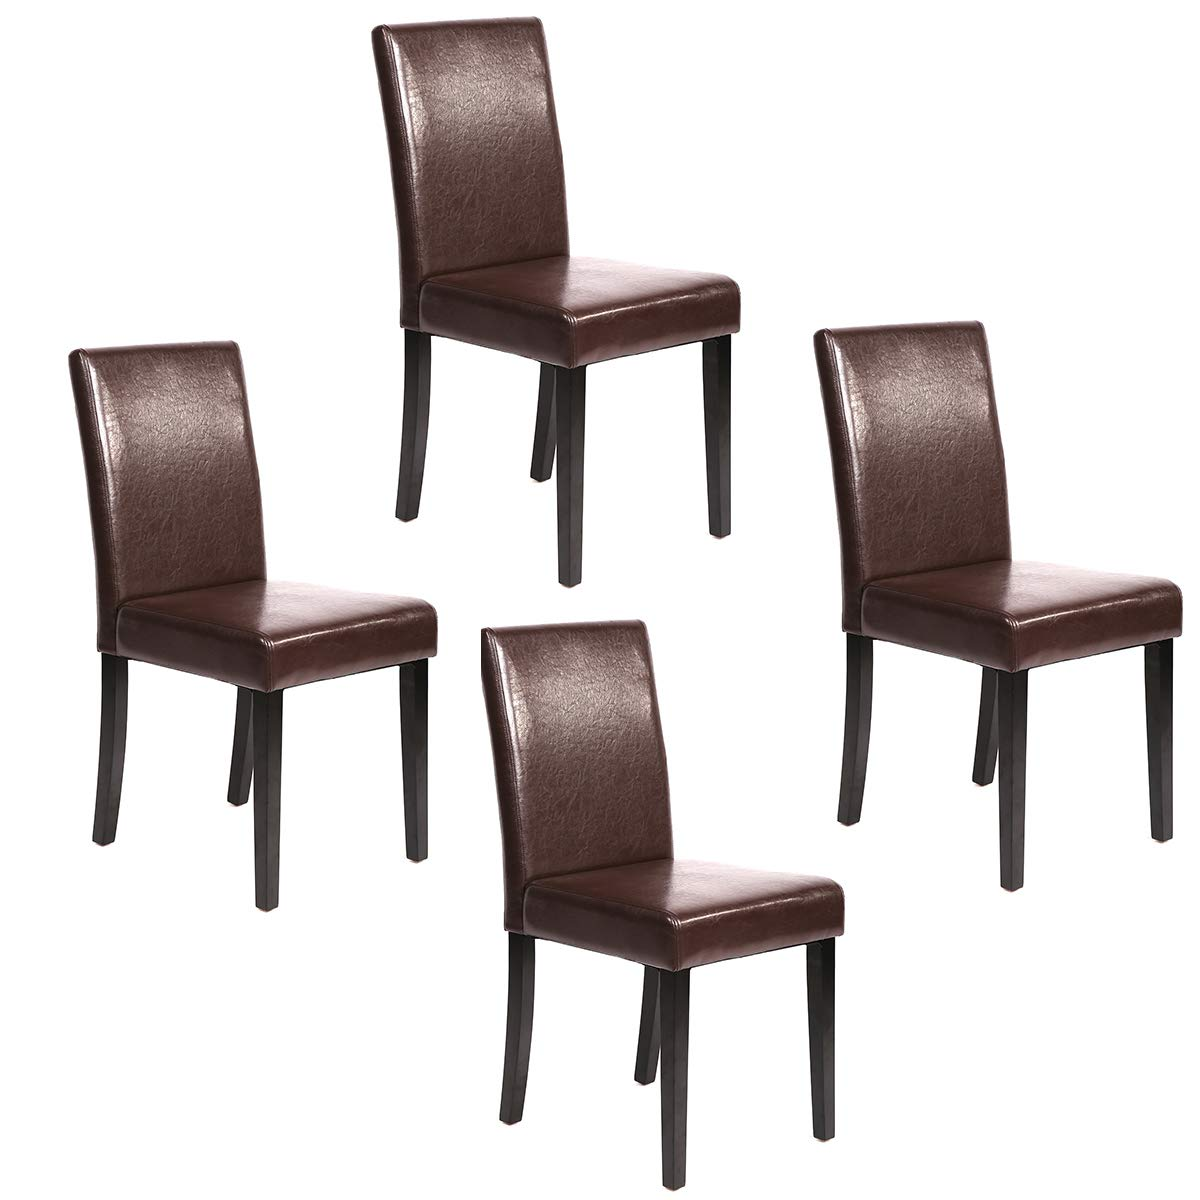 FDW Dining Chairs Dining Room Chairs Parsons Chair Kitchen Chairs Set of 4 Dining Chairs Side Chairs for Home Kitchen Living Room, Brown by FDW